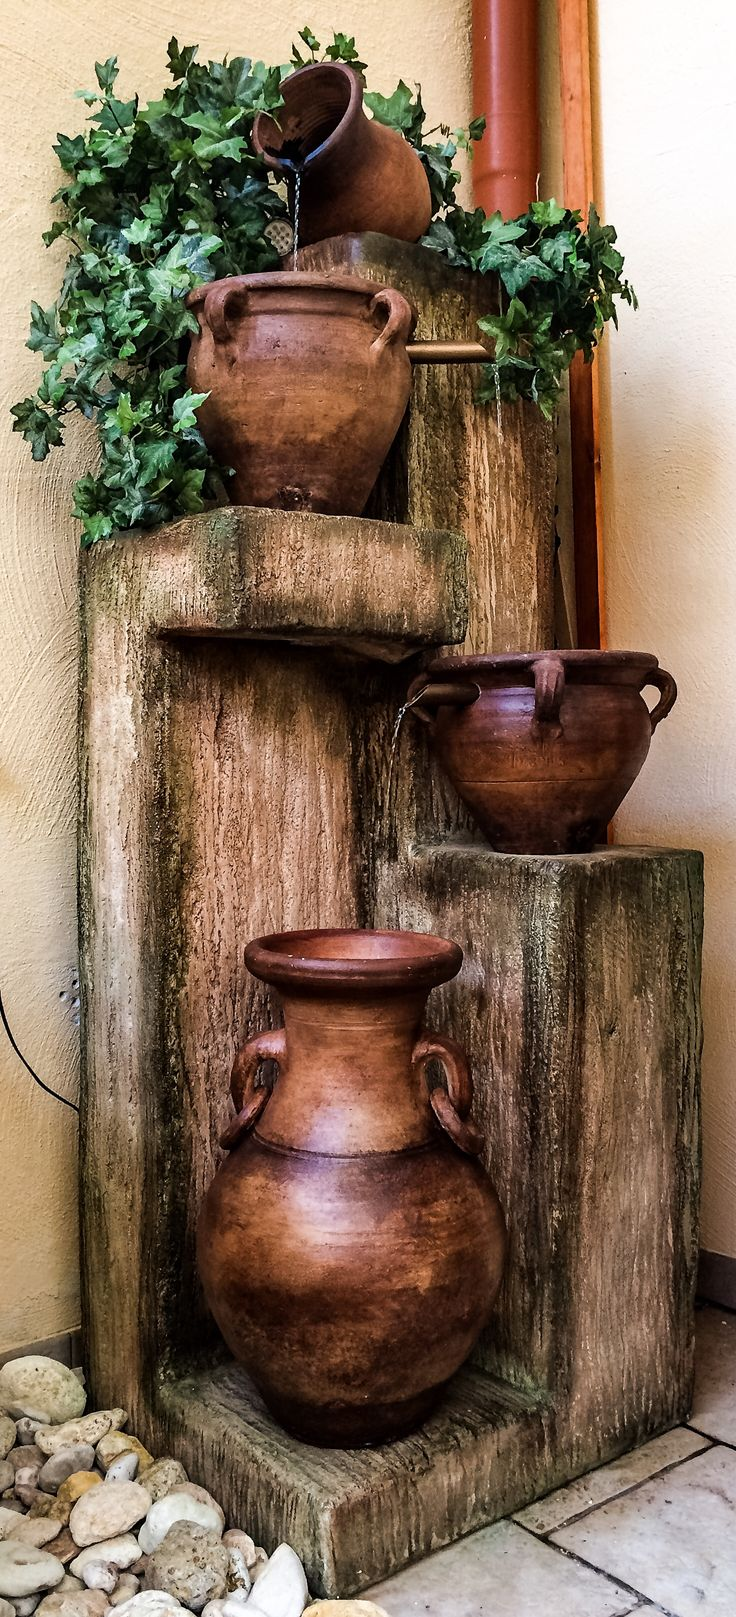 Old pottery transformed into a beautiful backyard fountain. The structure is made from concrete.